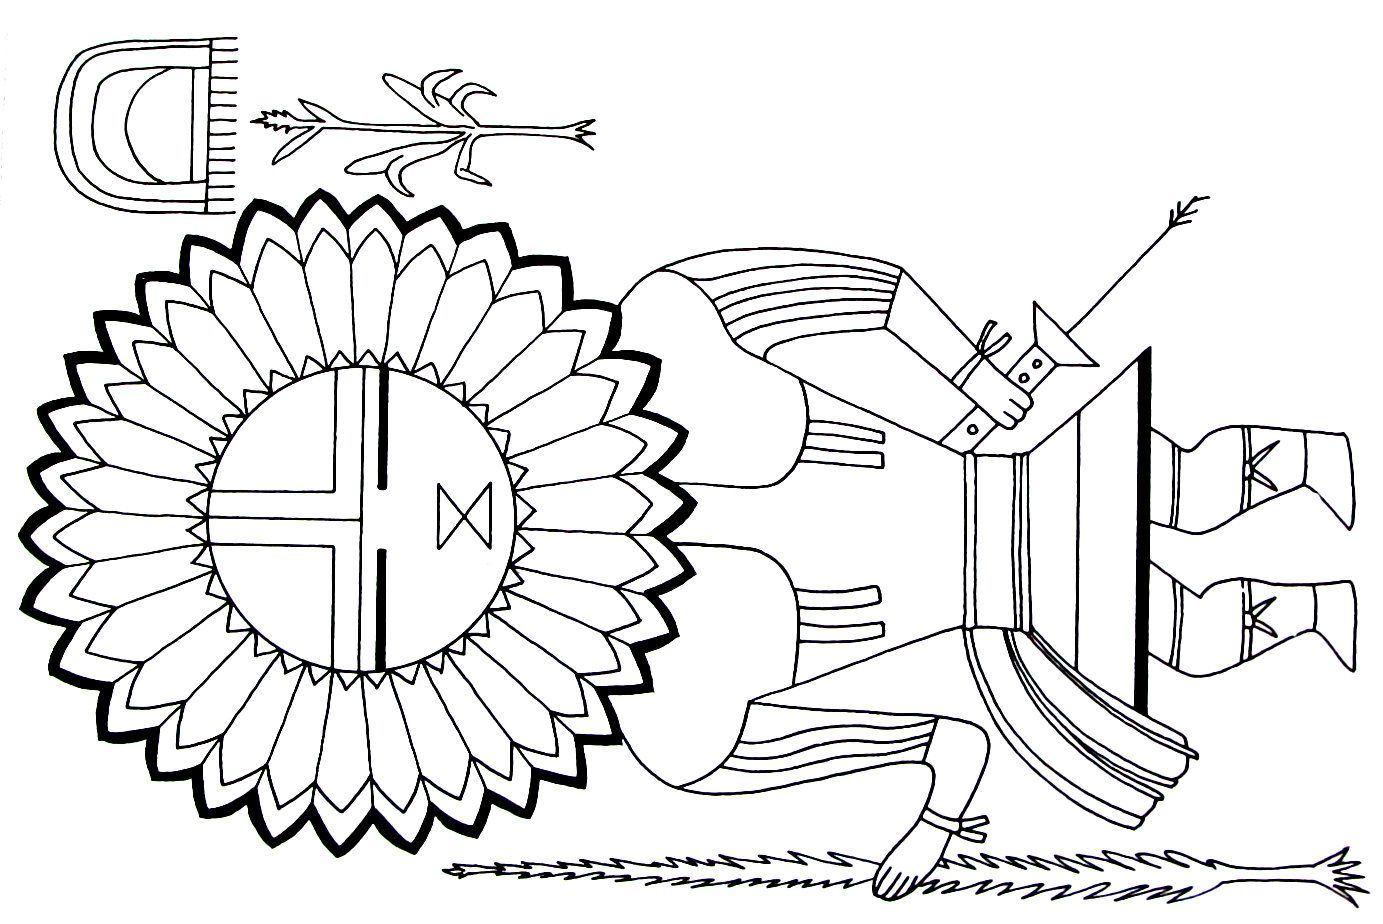 a sun kachina from the hopi indians printable coloring book page - Native American Coloring Book